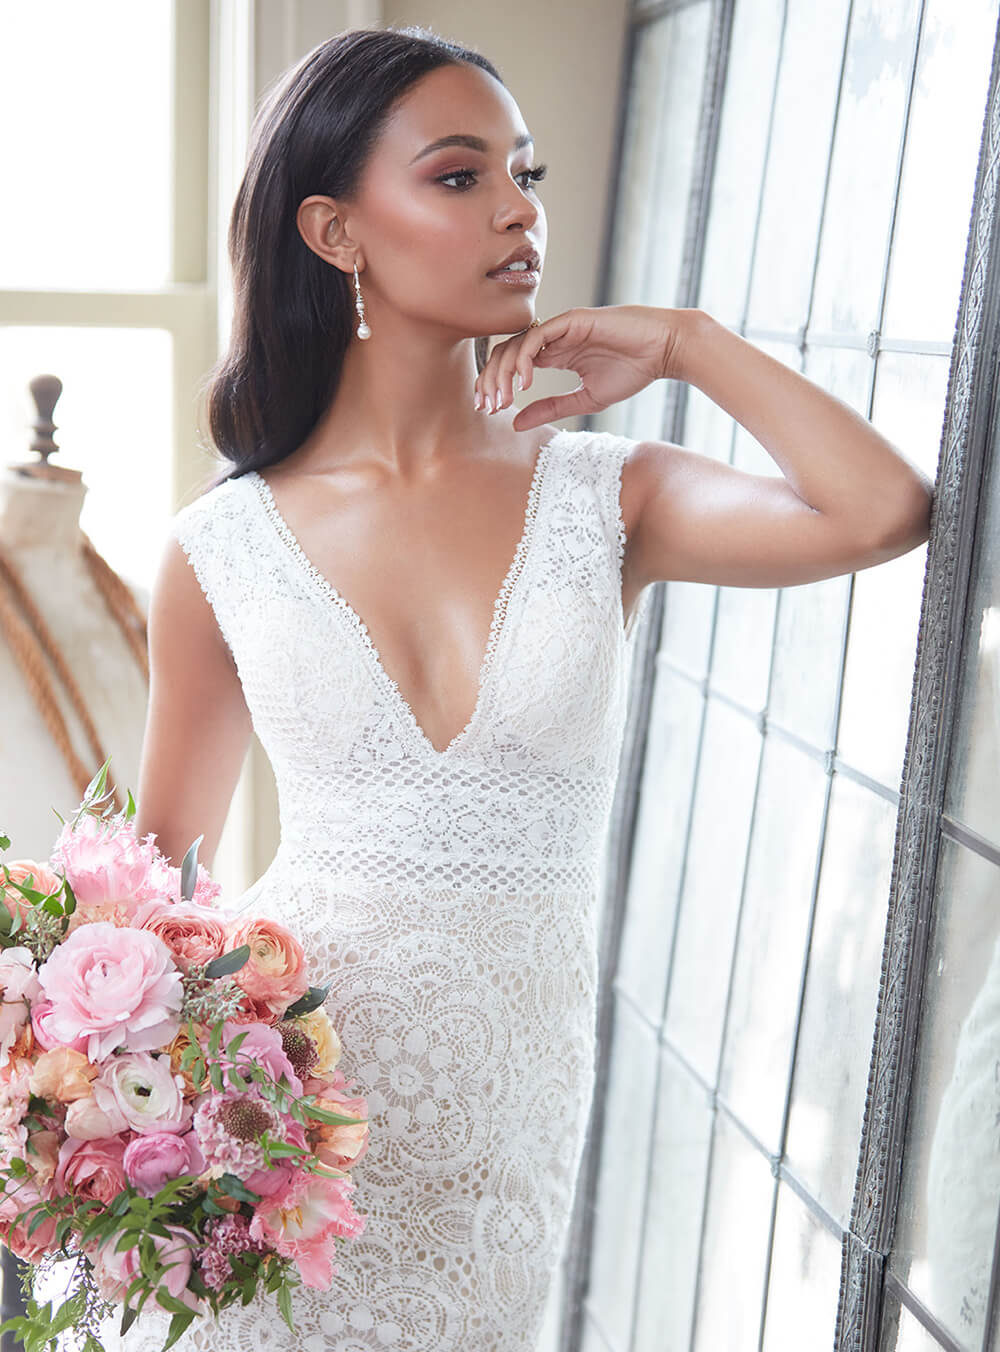 Check Out These Gorgeous Allure Wedding Dresses!